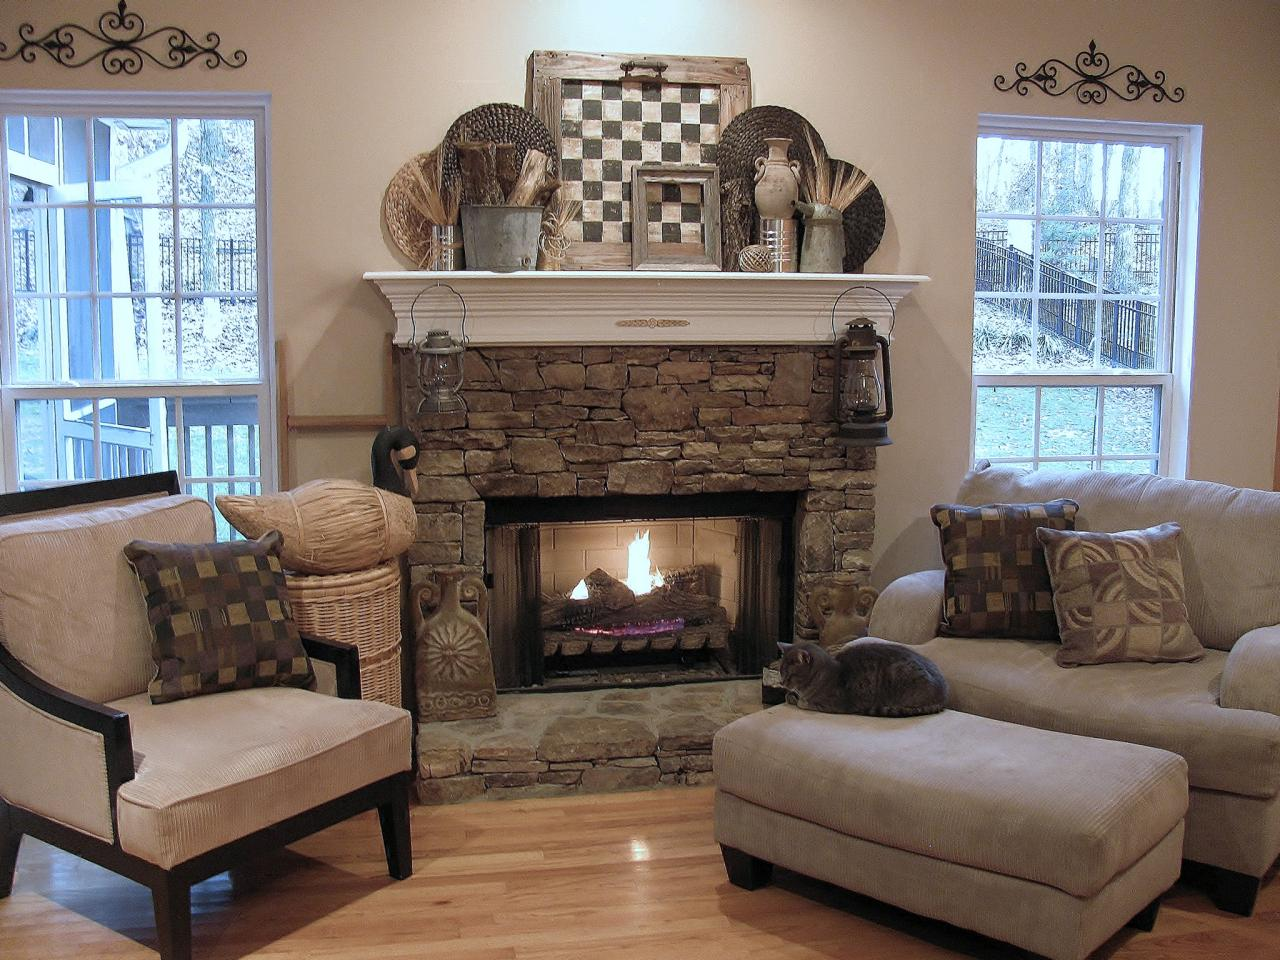 Rustic Mantel D    cor That Will Adorn Your Bored to Death Mantel     rustic mantel decor made of stone decorated with cozy armchairs plus comfy  single couch completed with